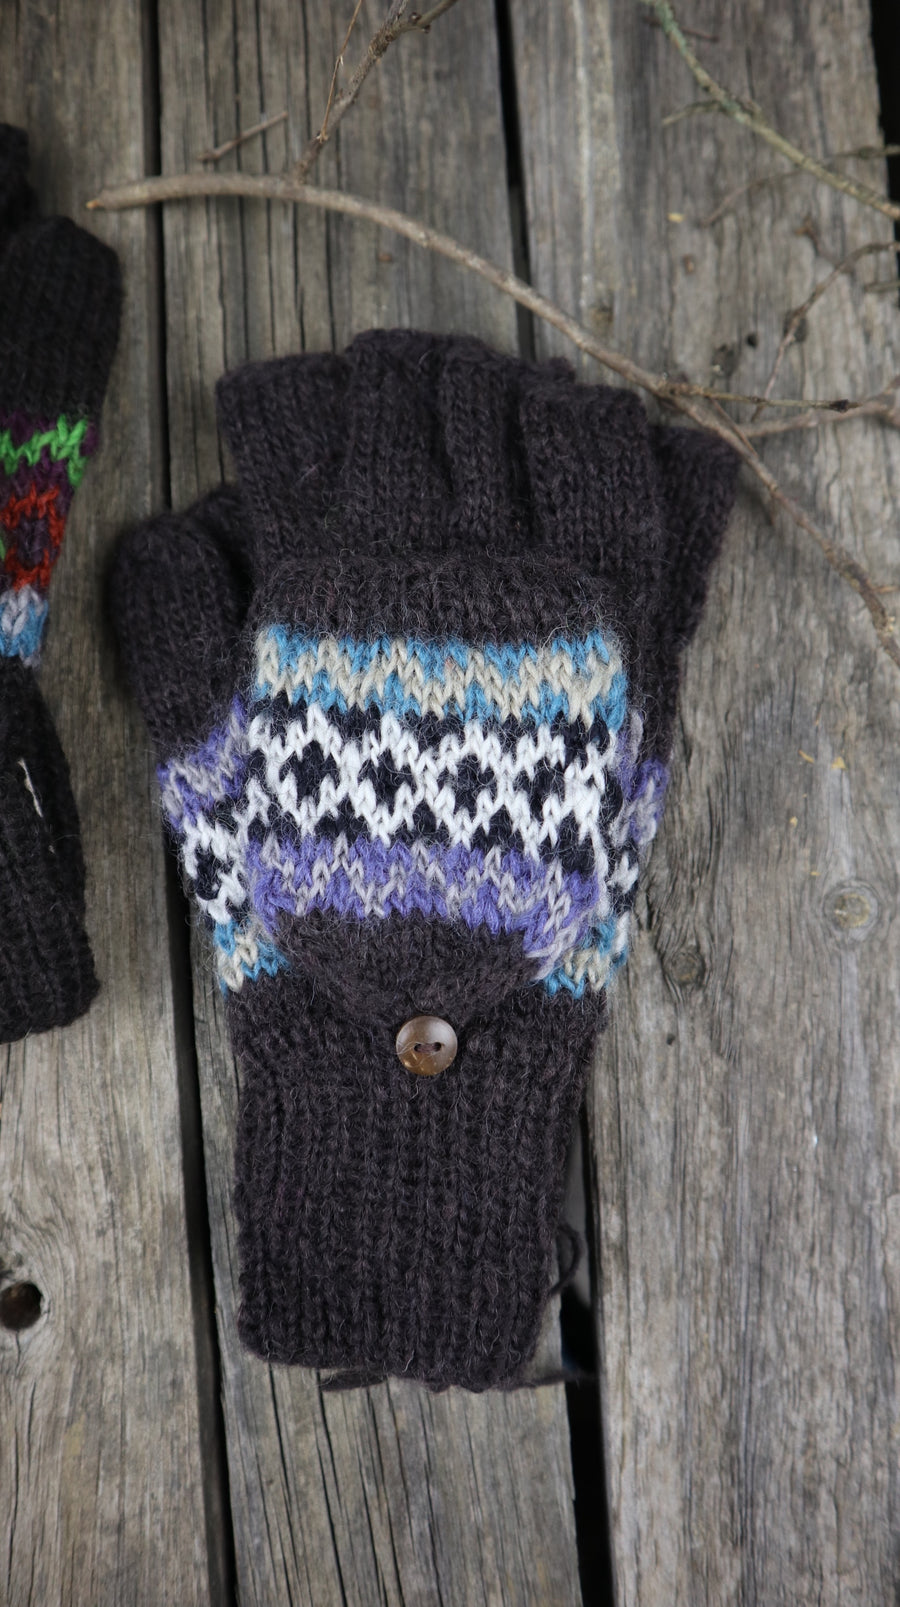 Fair Trade Ethical Adult Fingerless Gloves with Cap Patterned Design Browns